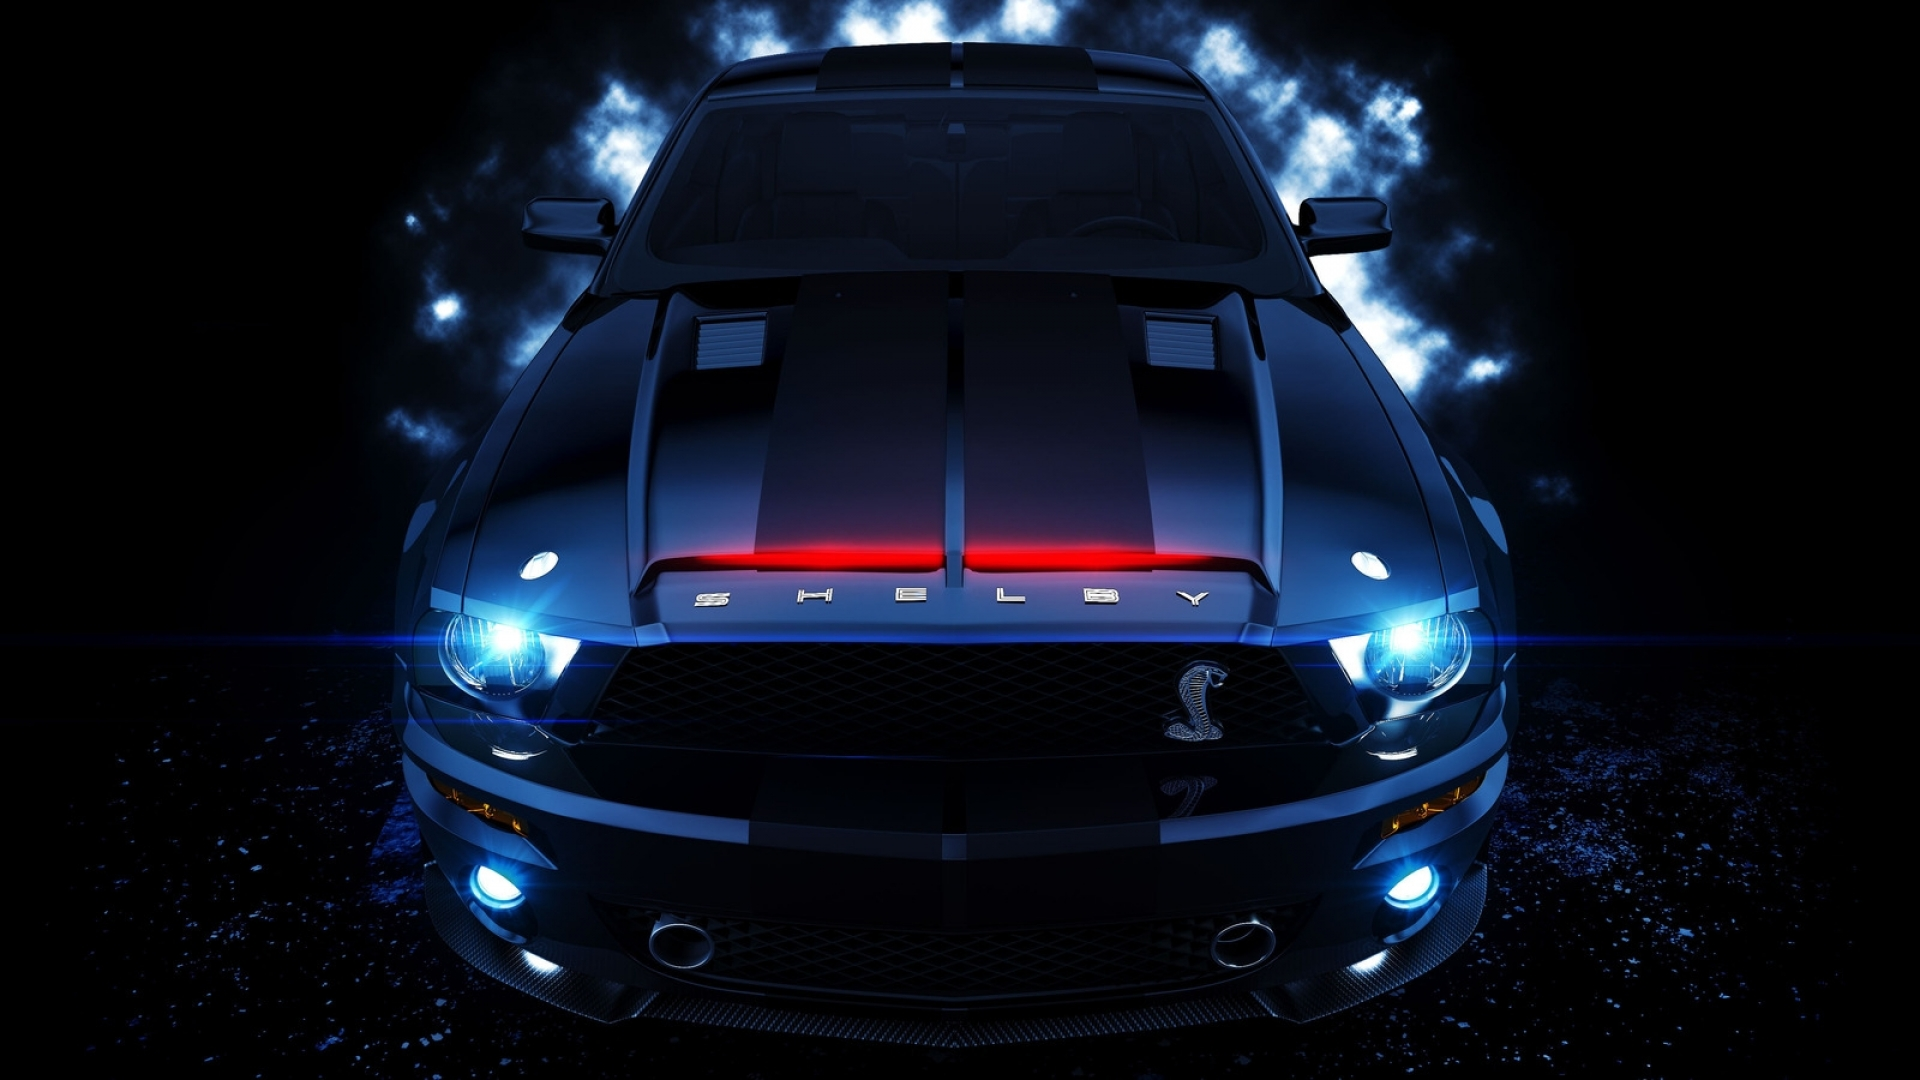 2017 Ford Shelby Gt >> Ford Mustang Shelby Gt muscle cars wallpaper | 1920x1080 | 48333 | WallpaperUP